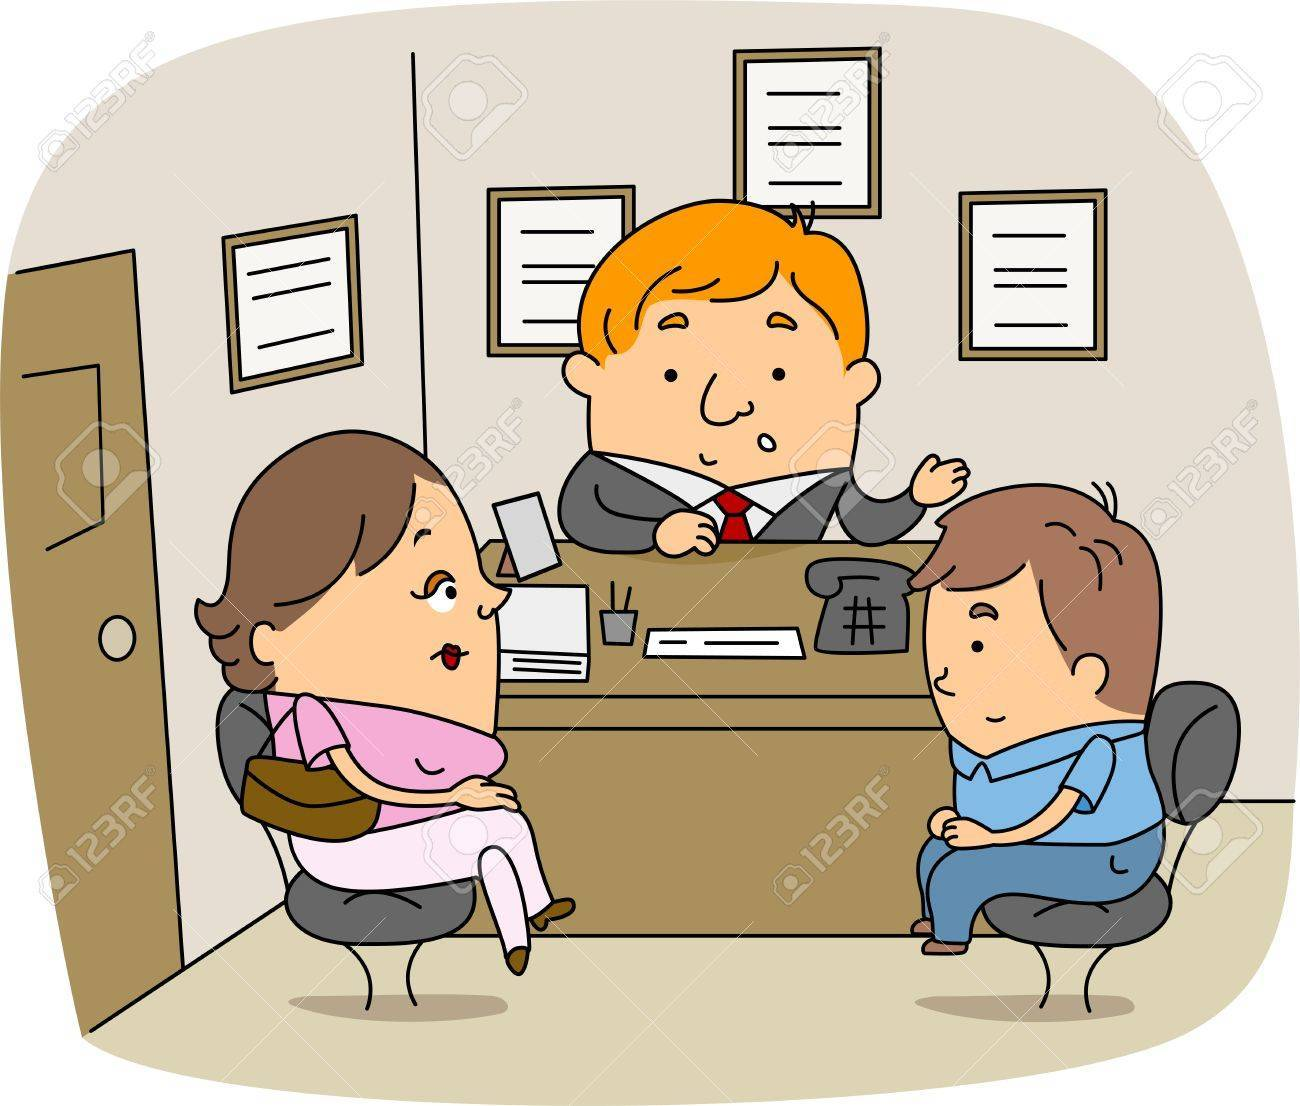 School guidance office clipart 3 » Clipart Portal.